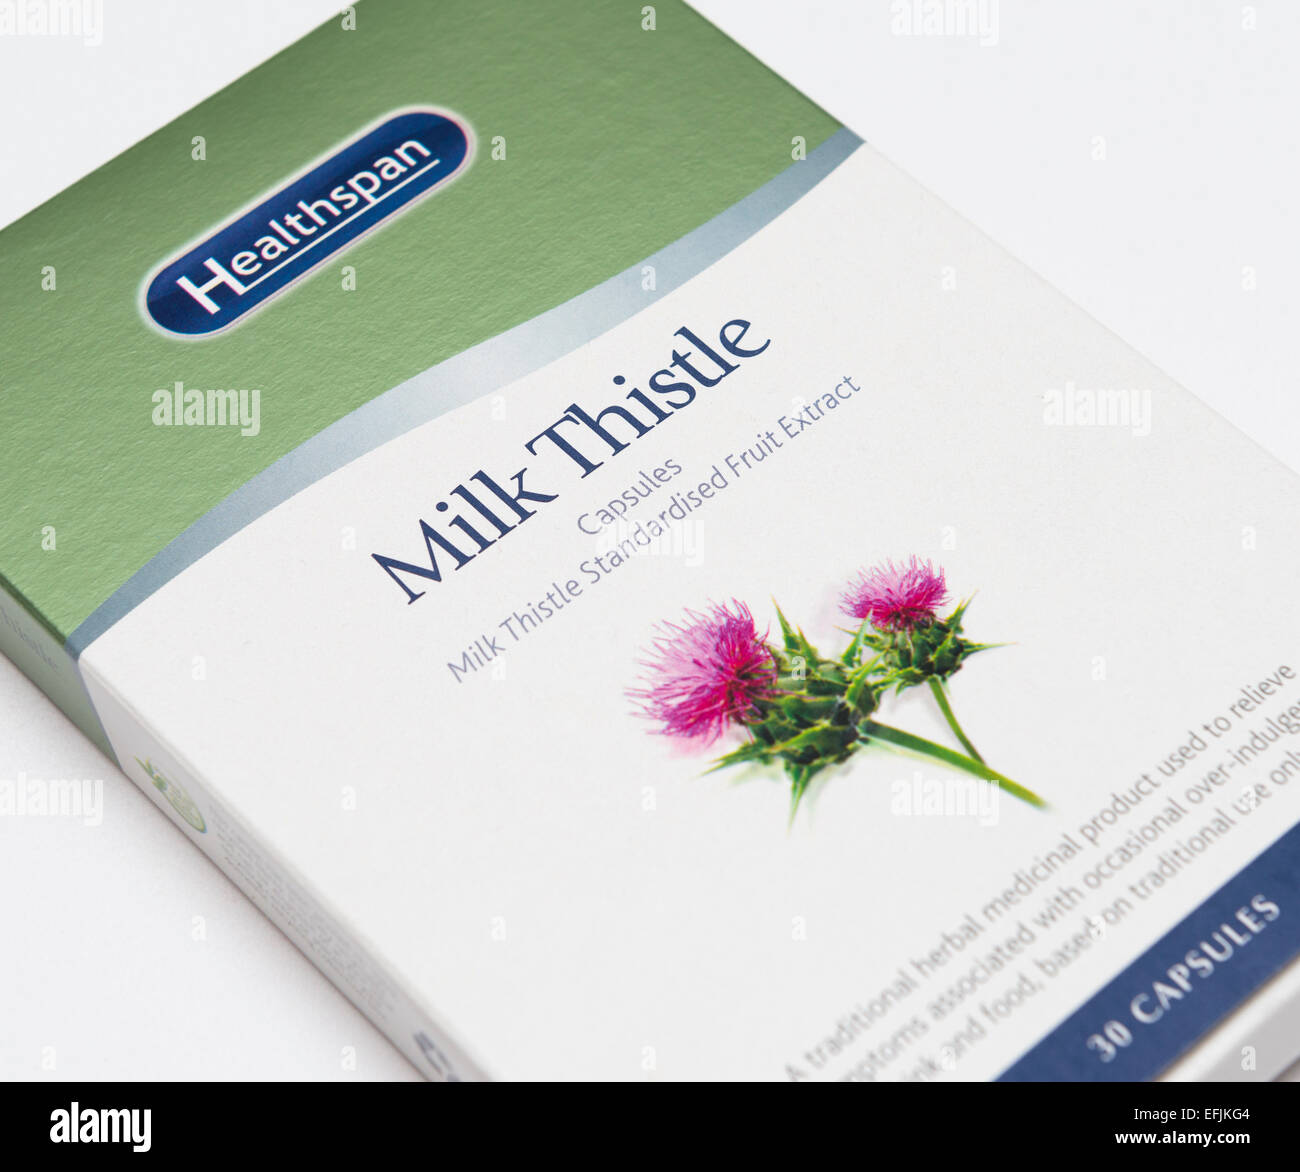 Milk Thistle tablets - Stock Image